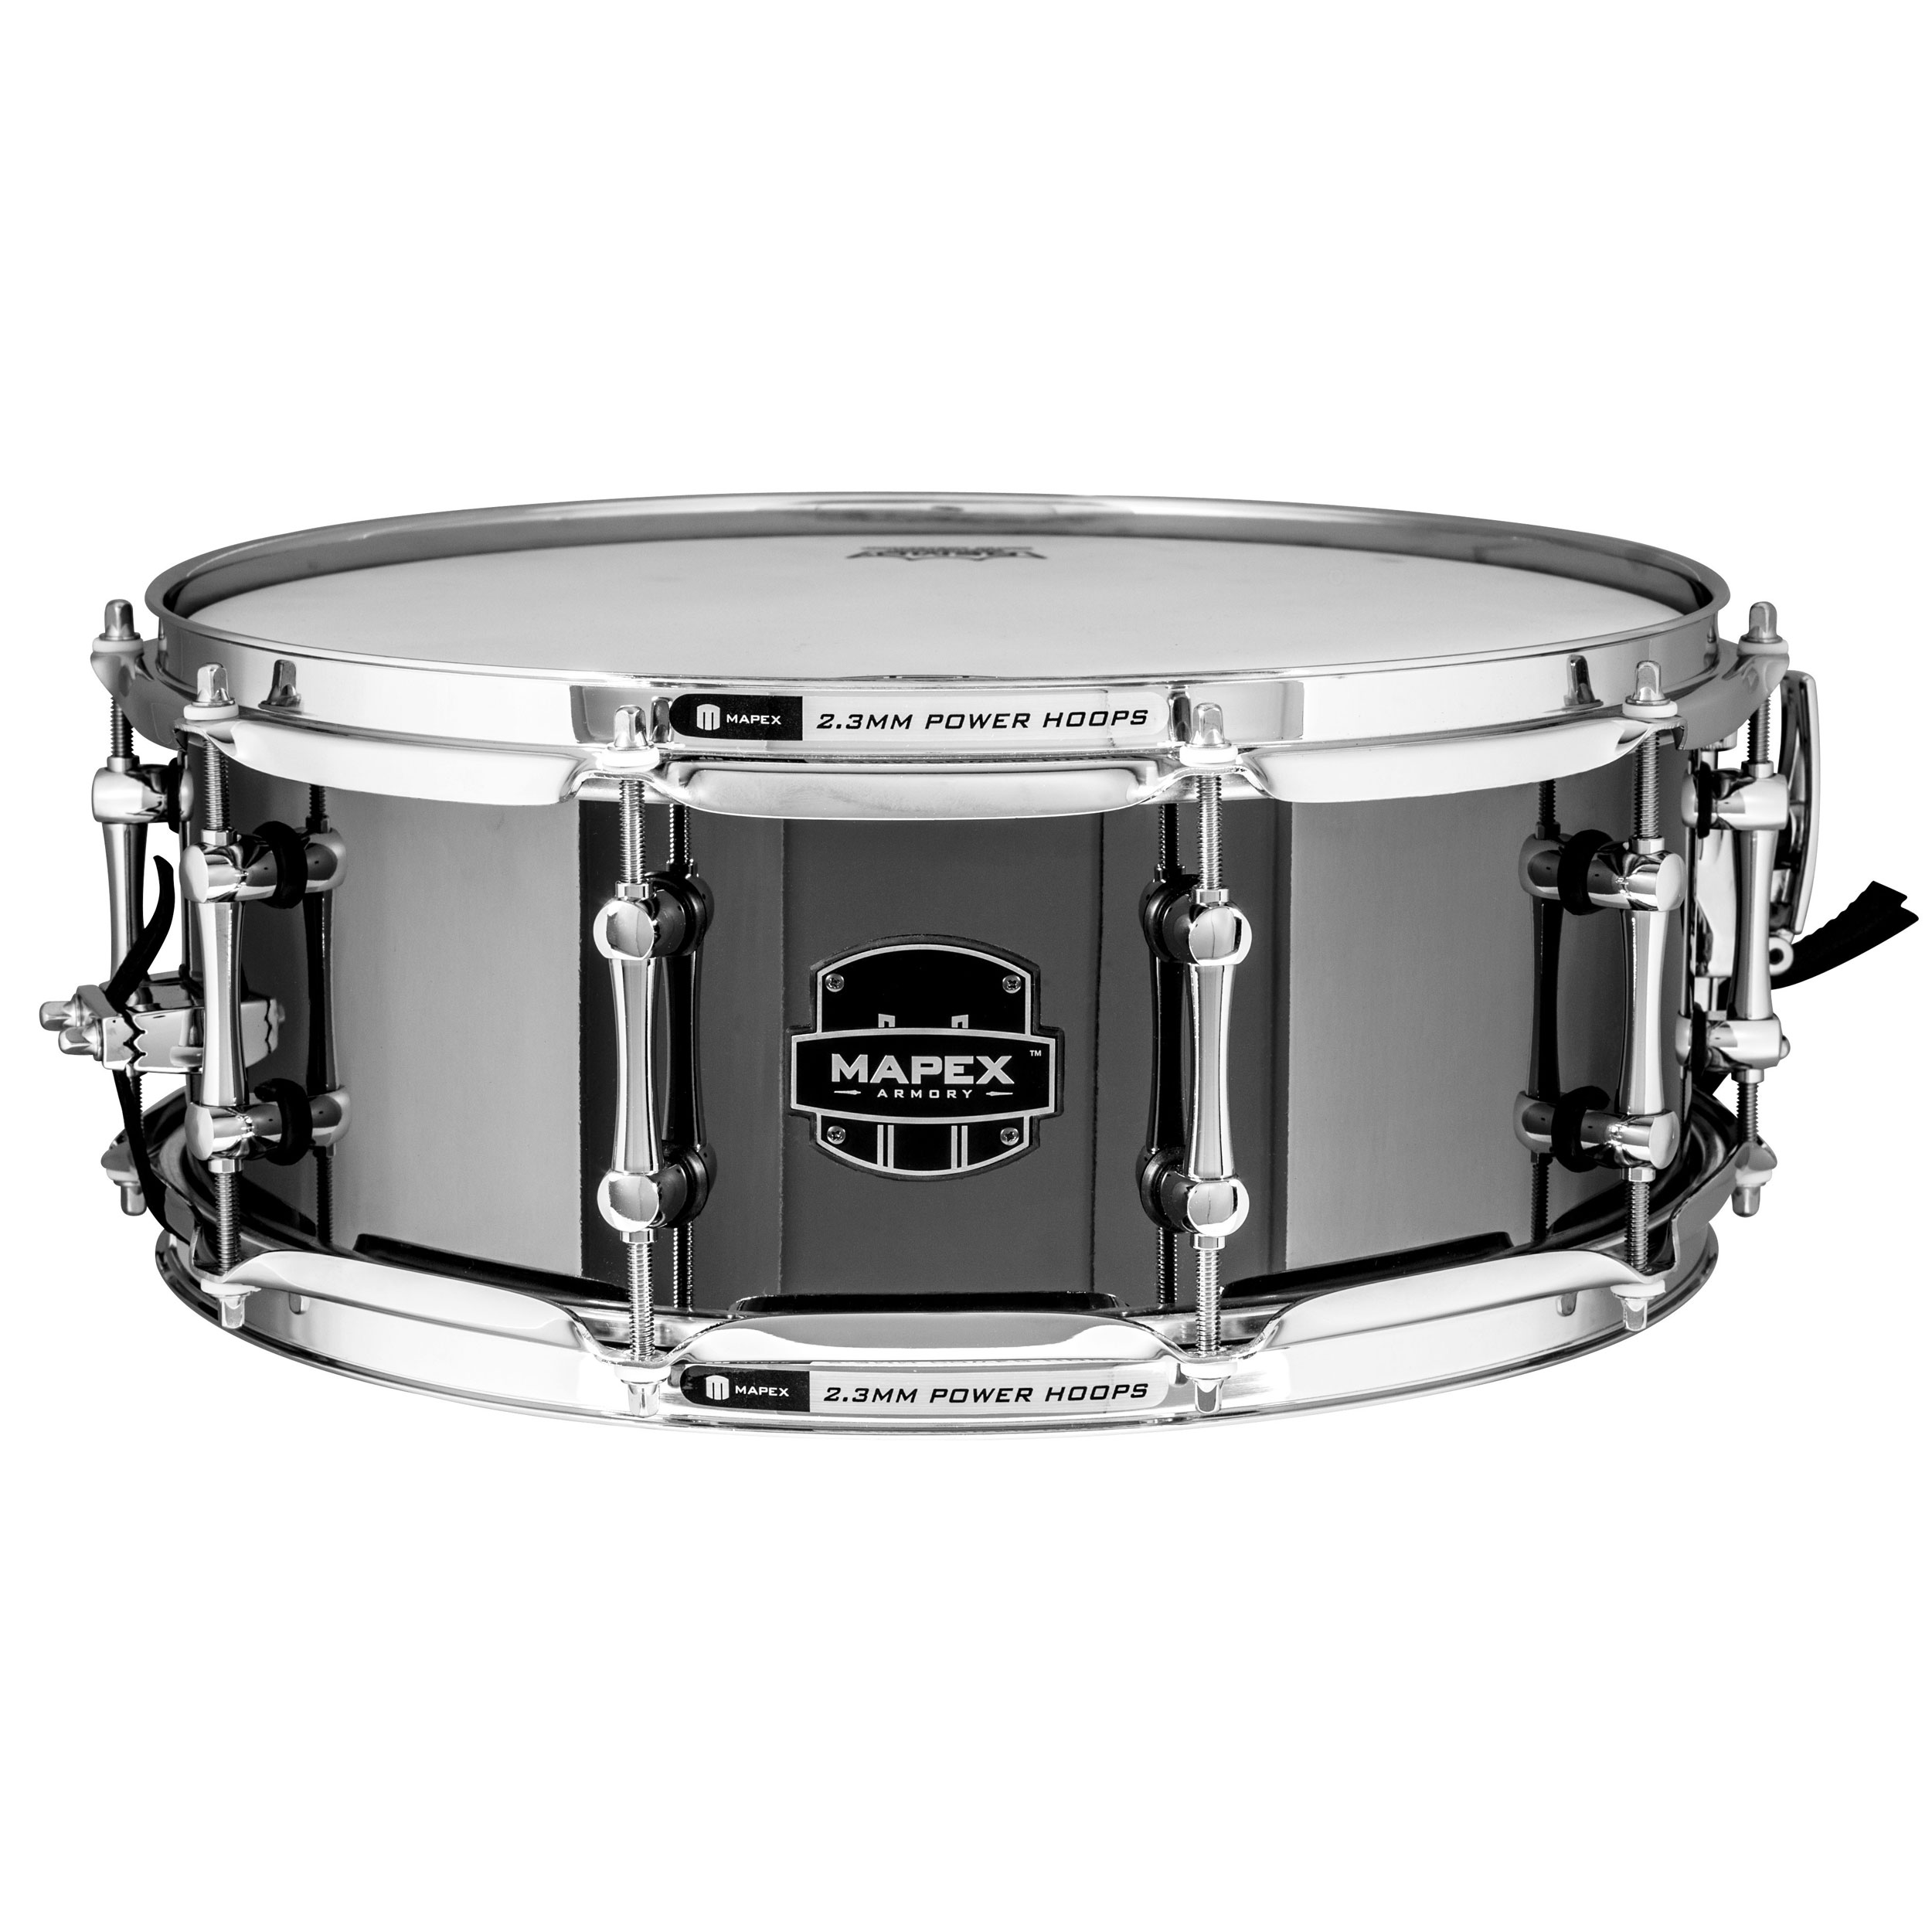 "Mapex 5.5"" x 14"" Armory Tomahawk Steel Snare Drum"